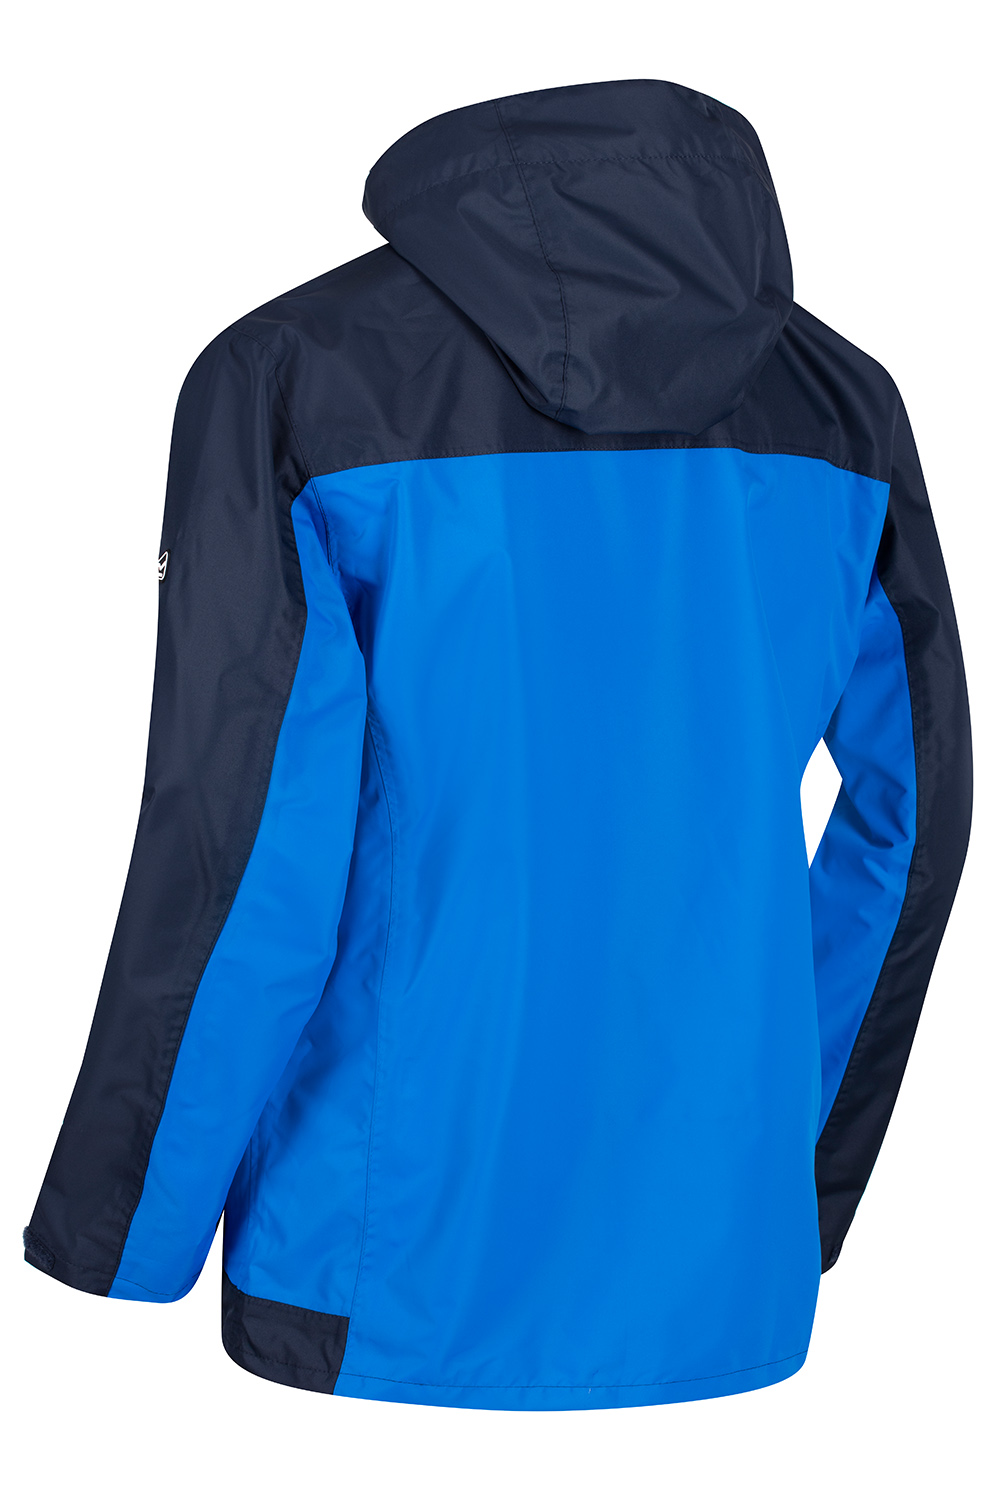 Regatta-Mens-Calderdale-II-Jacket-Waterproof-Breathable-Isotex-5000-Hooded-Coat thumbnail 11